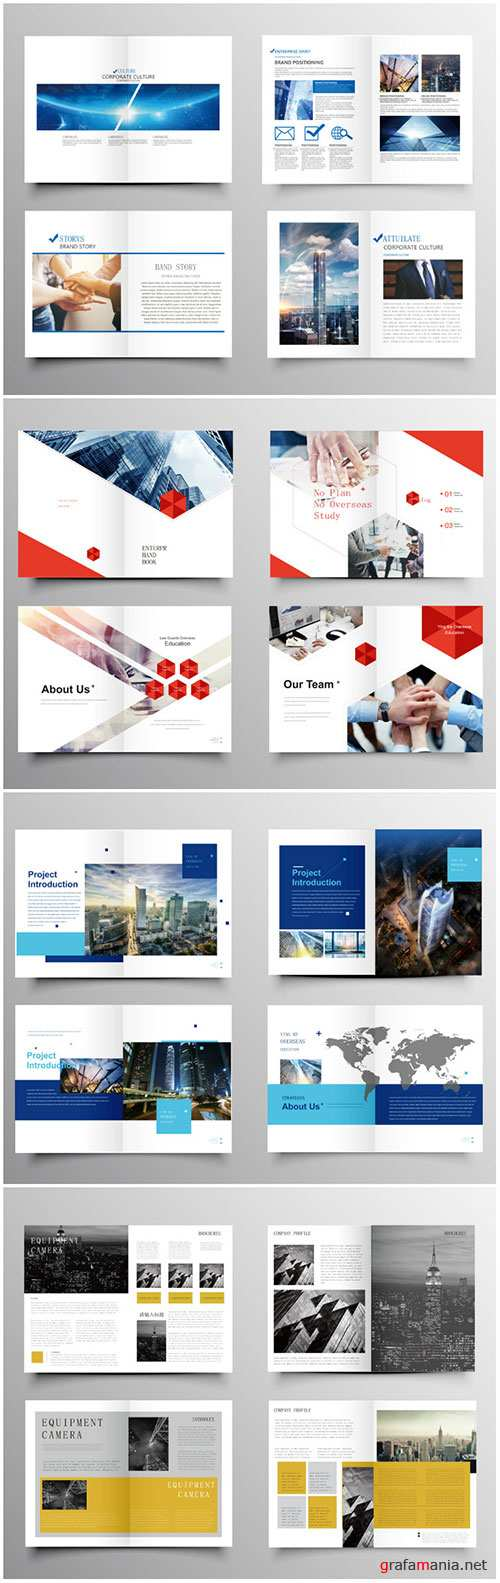 Brochure template vector layout design, corporate business annual report, magazine, flyer mockup # 226